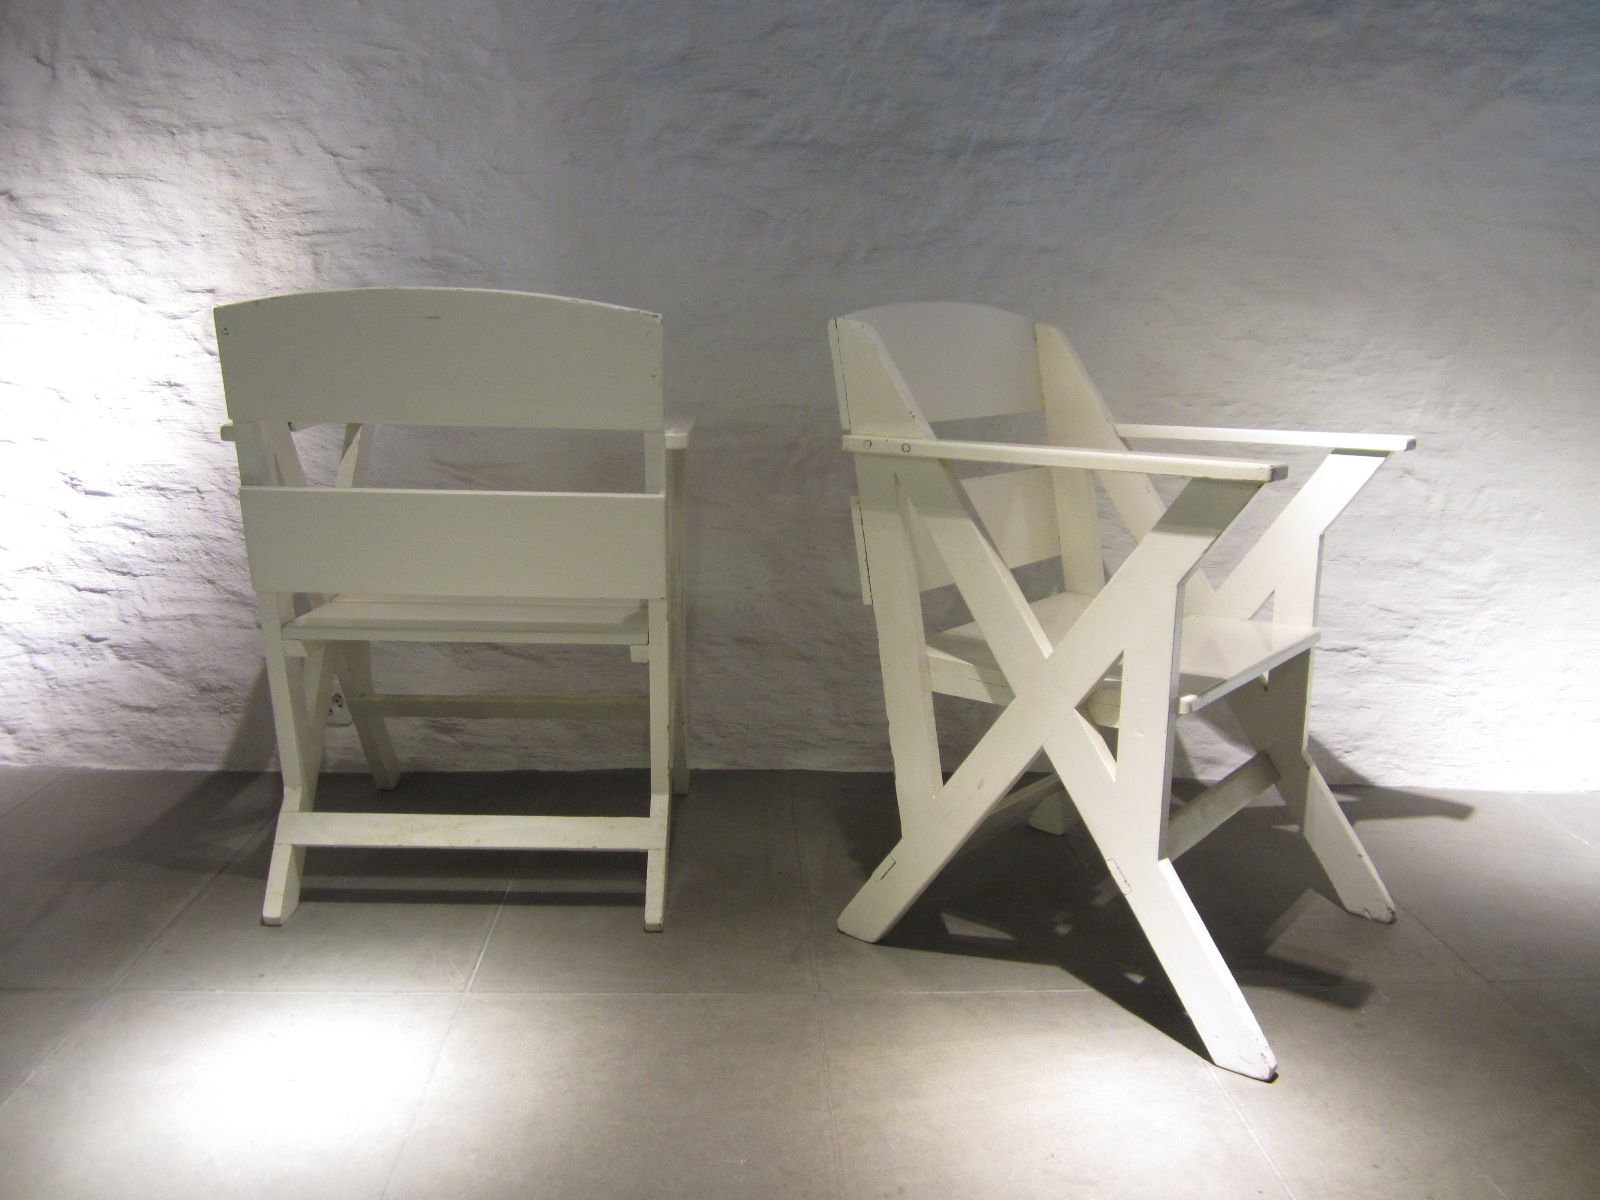 veranda chair design wooden swivel desk french chairs 1940s set of 2 for sale at pamono